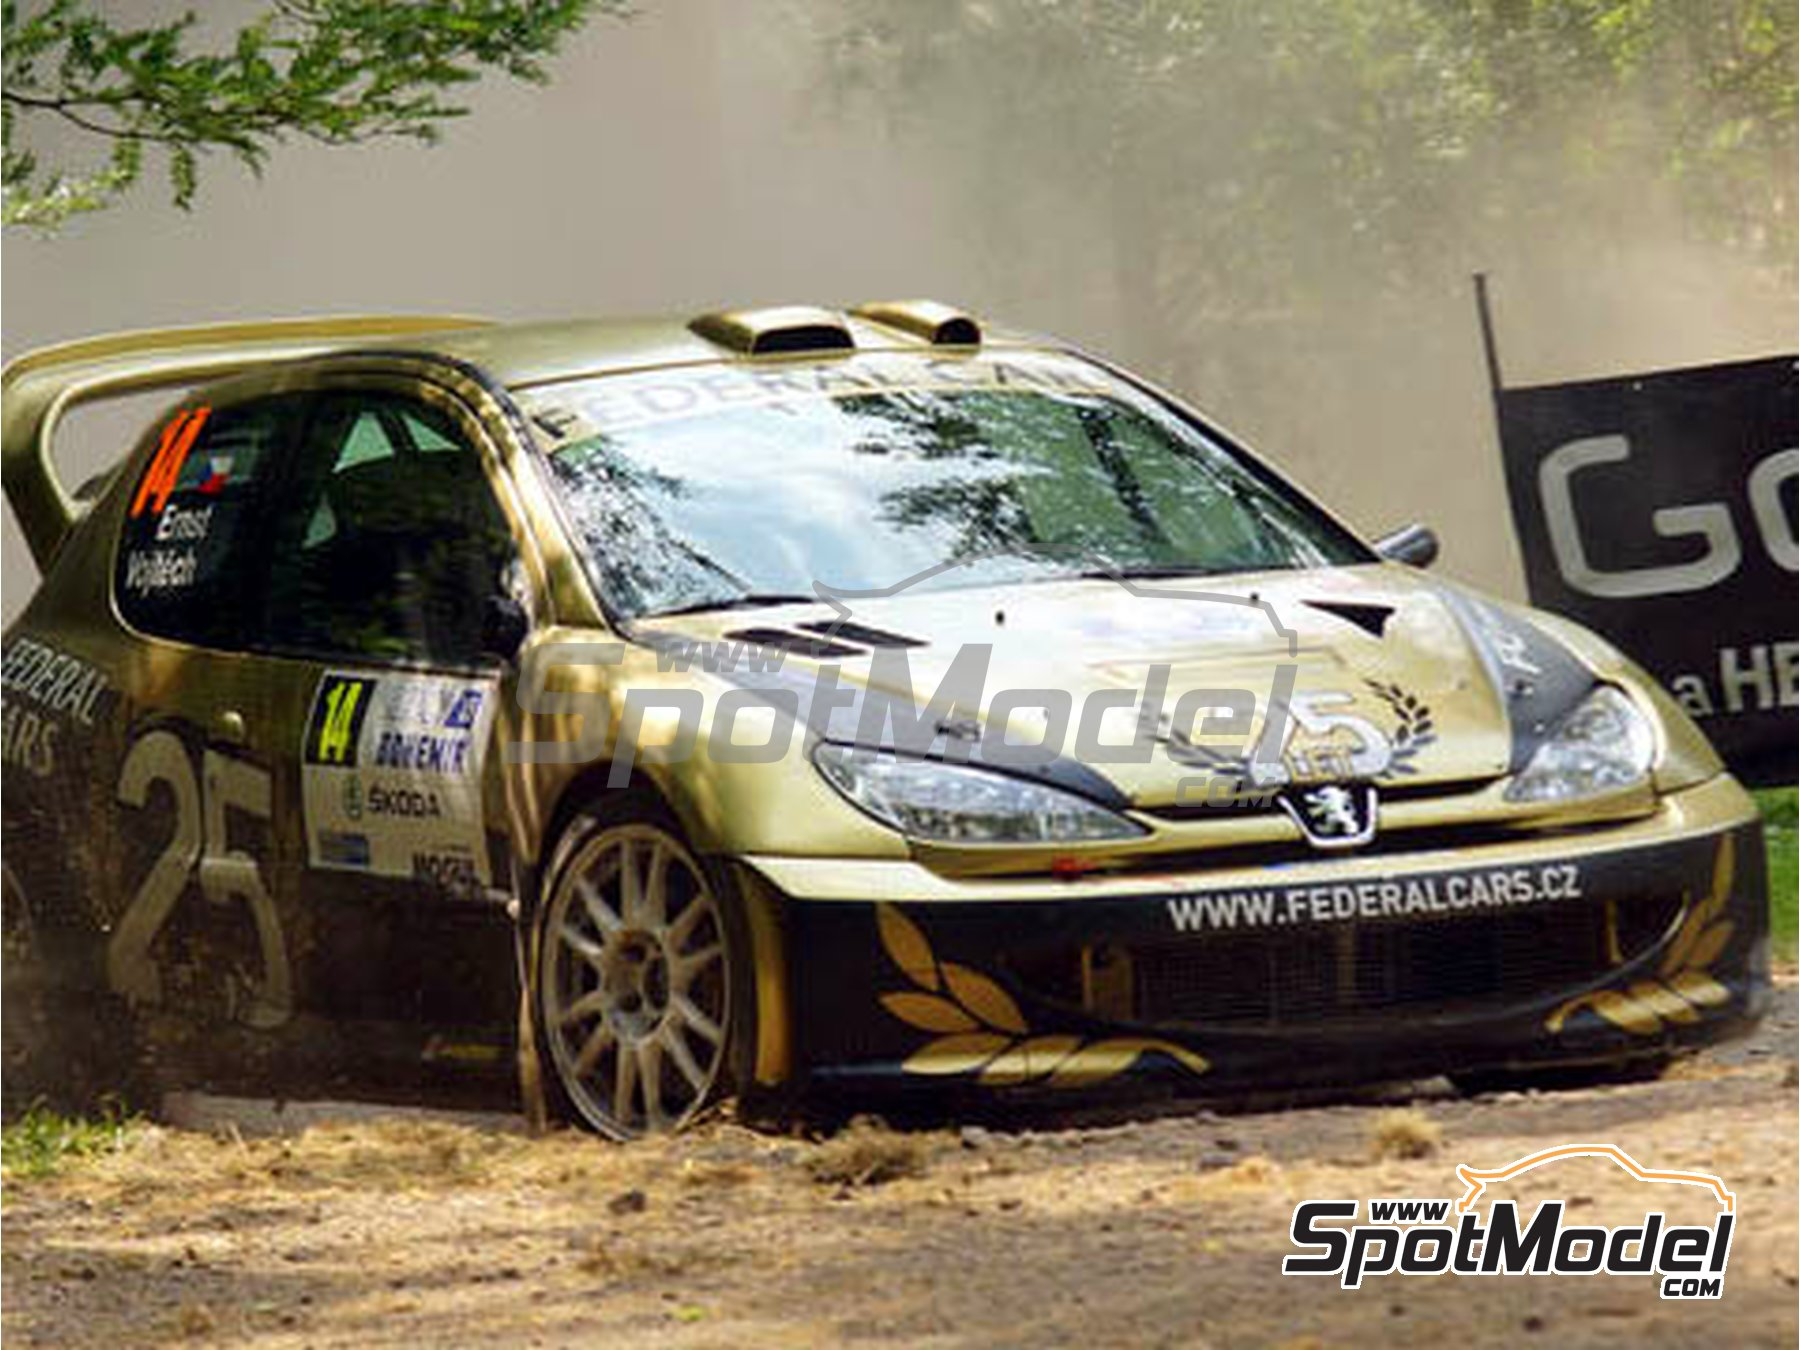 Image 12: Peugeot 206 WRC Federal Cars - Bohemia rally 2015 | Marking / livery in 1/24 scale manufactured by Reji Model (ref.REJI-206)